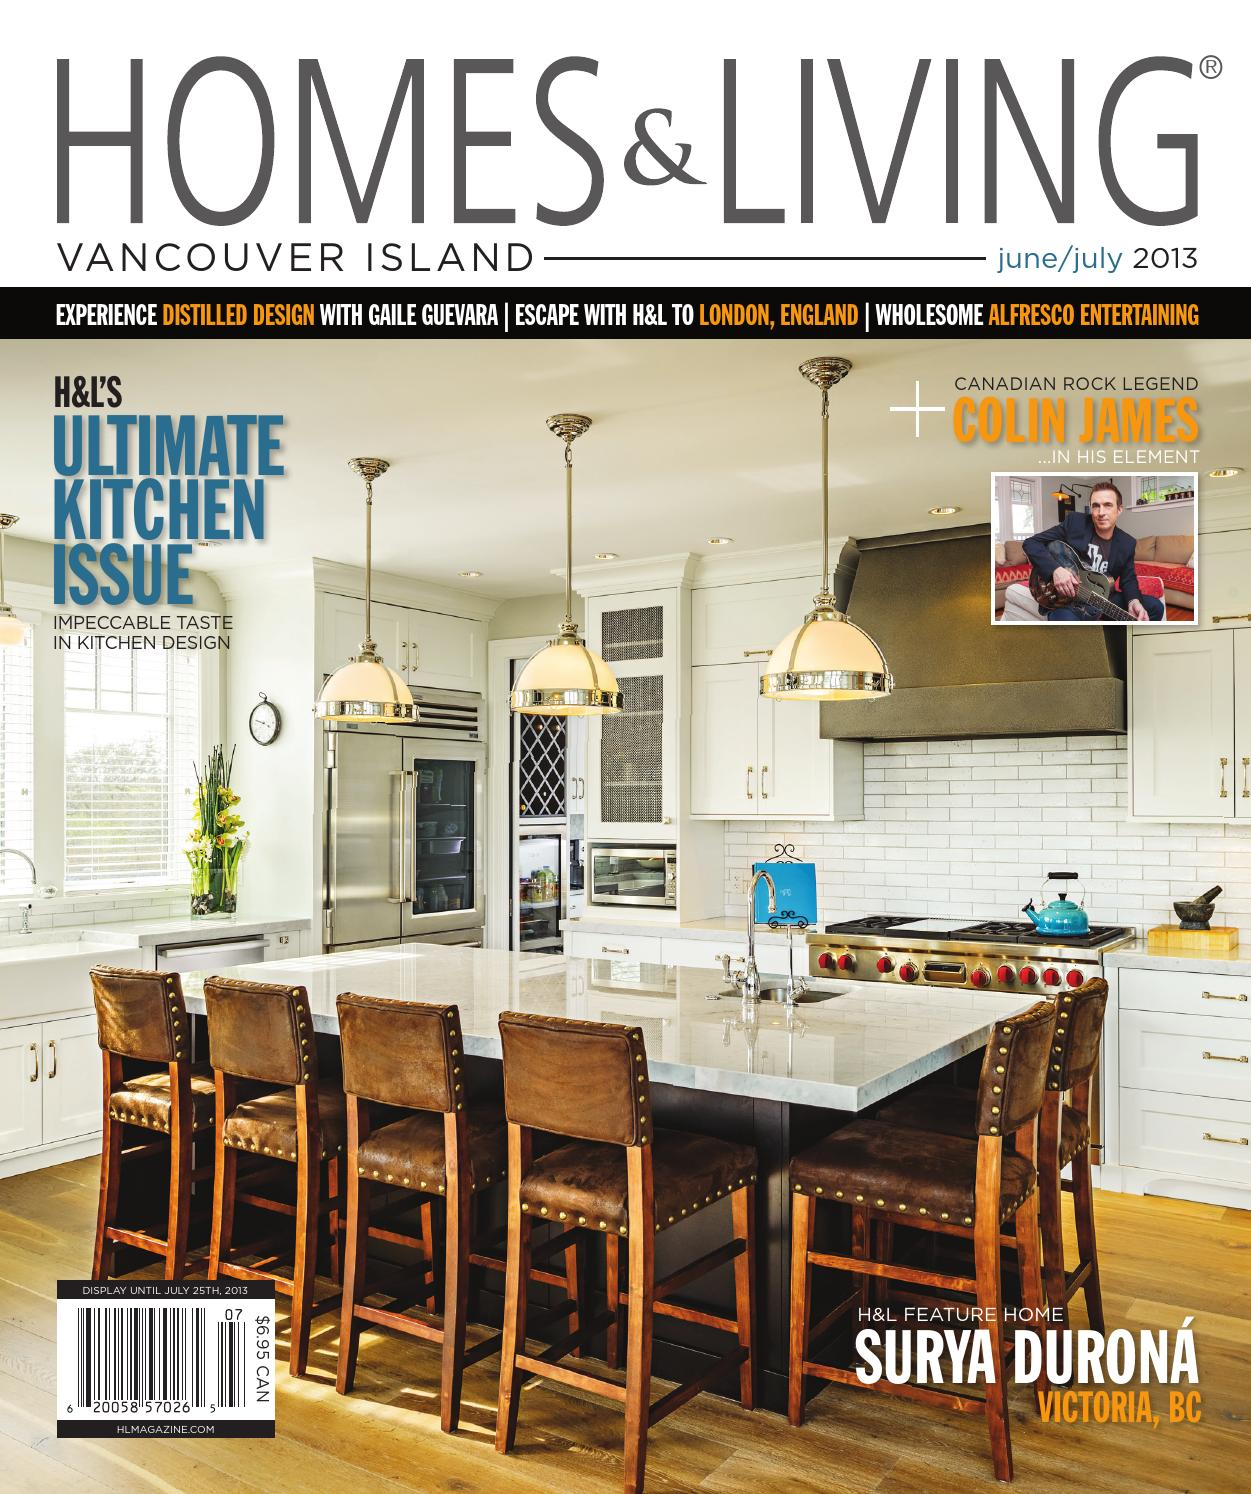 Vancouver Living: Homes & Living Magazine Vancouver Island June/July 2013